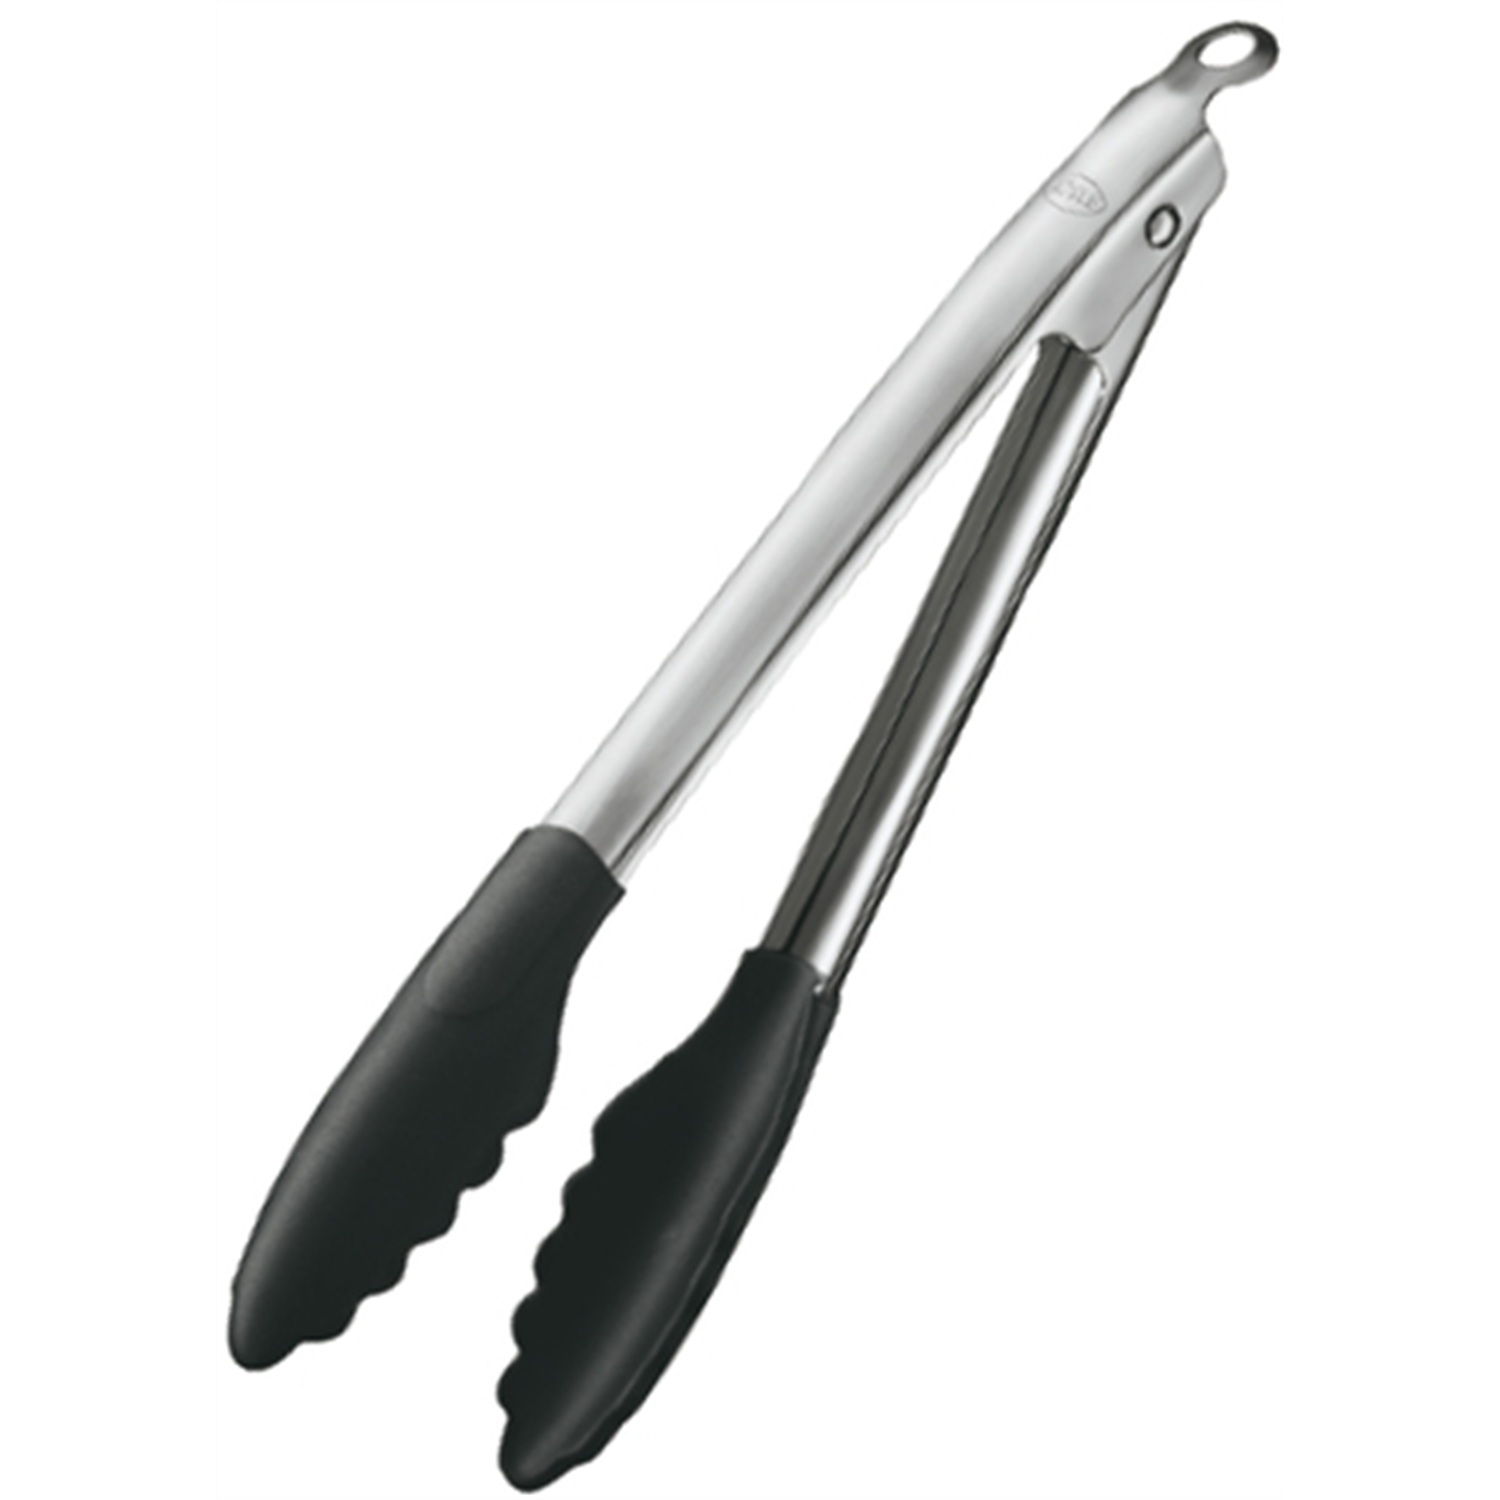 Rosle Stainless Steel and Silicone Locking Tongs, 12 Inch